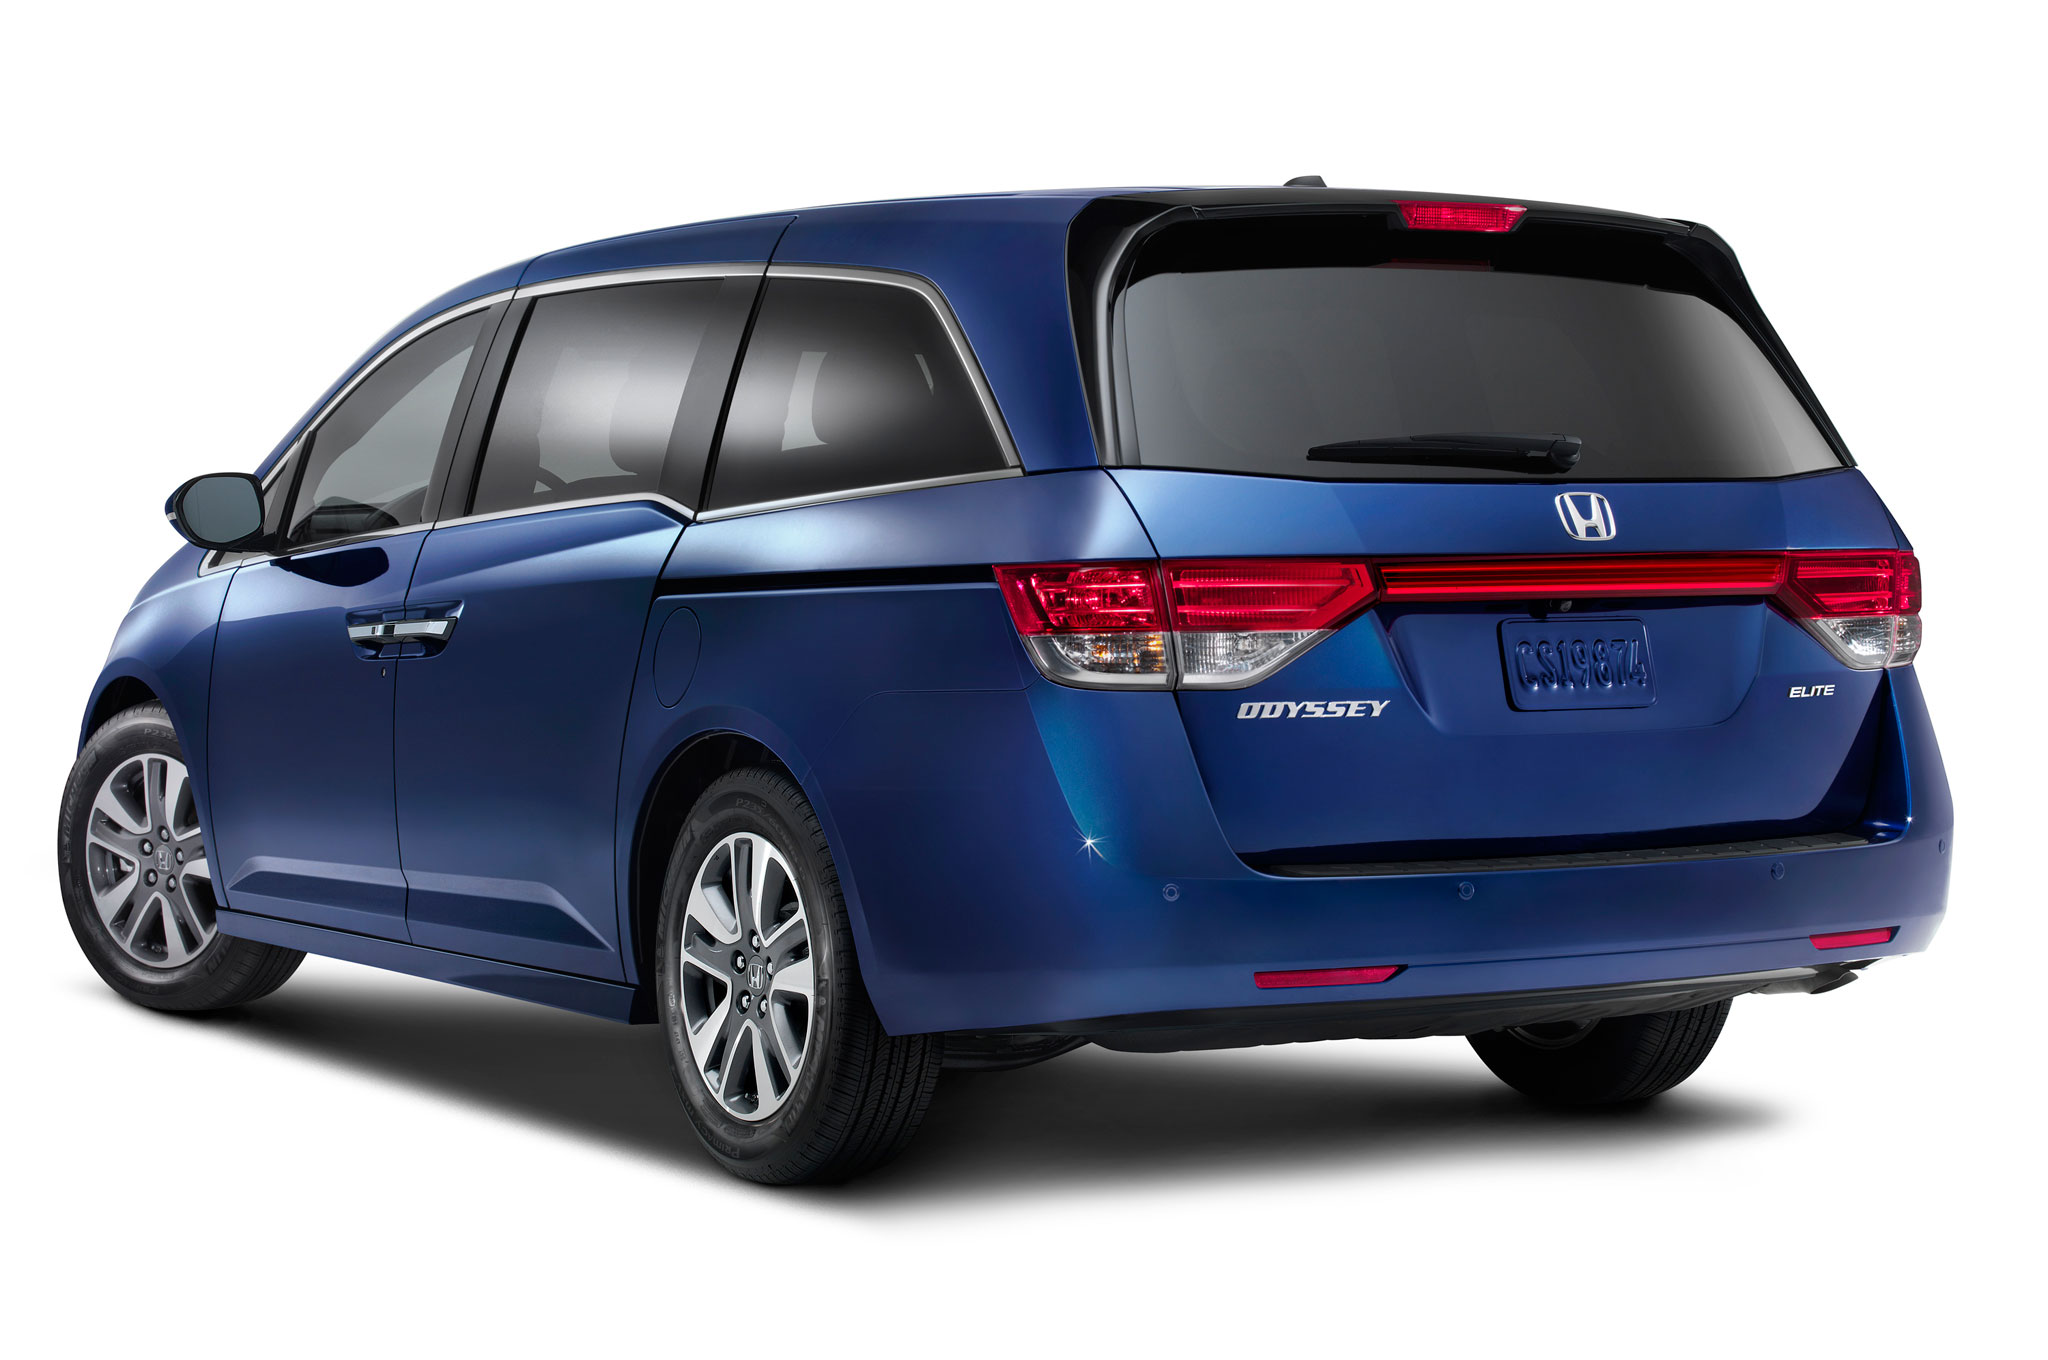 2016 Honda Odyssey Adds SE Trim with More Standard Features